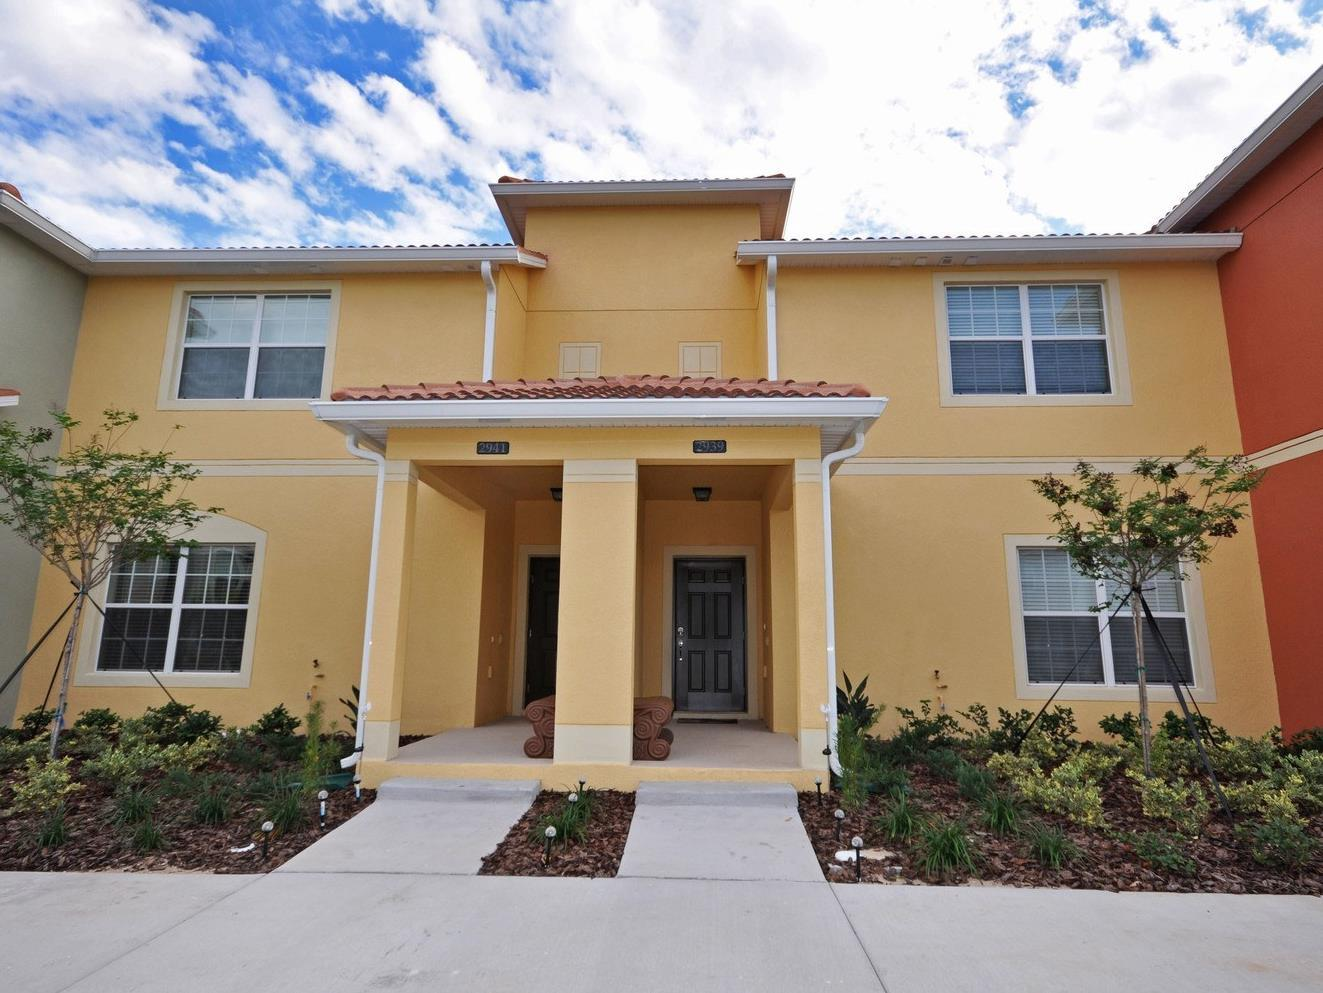 Dpm-085 4 Bed 3 Bath Townhouse In Paradise Palms